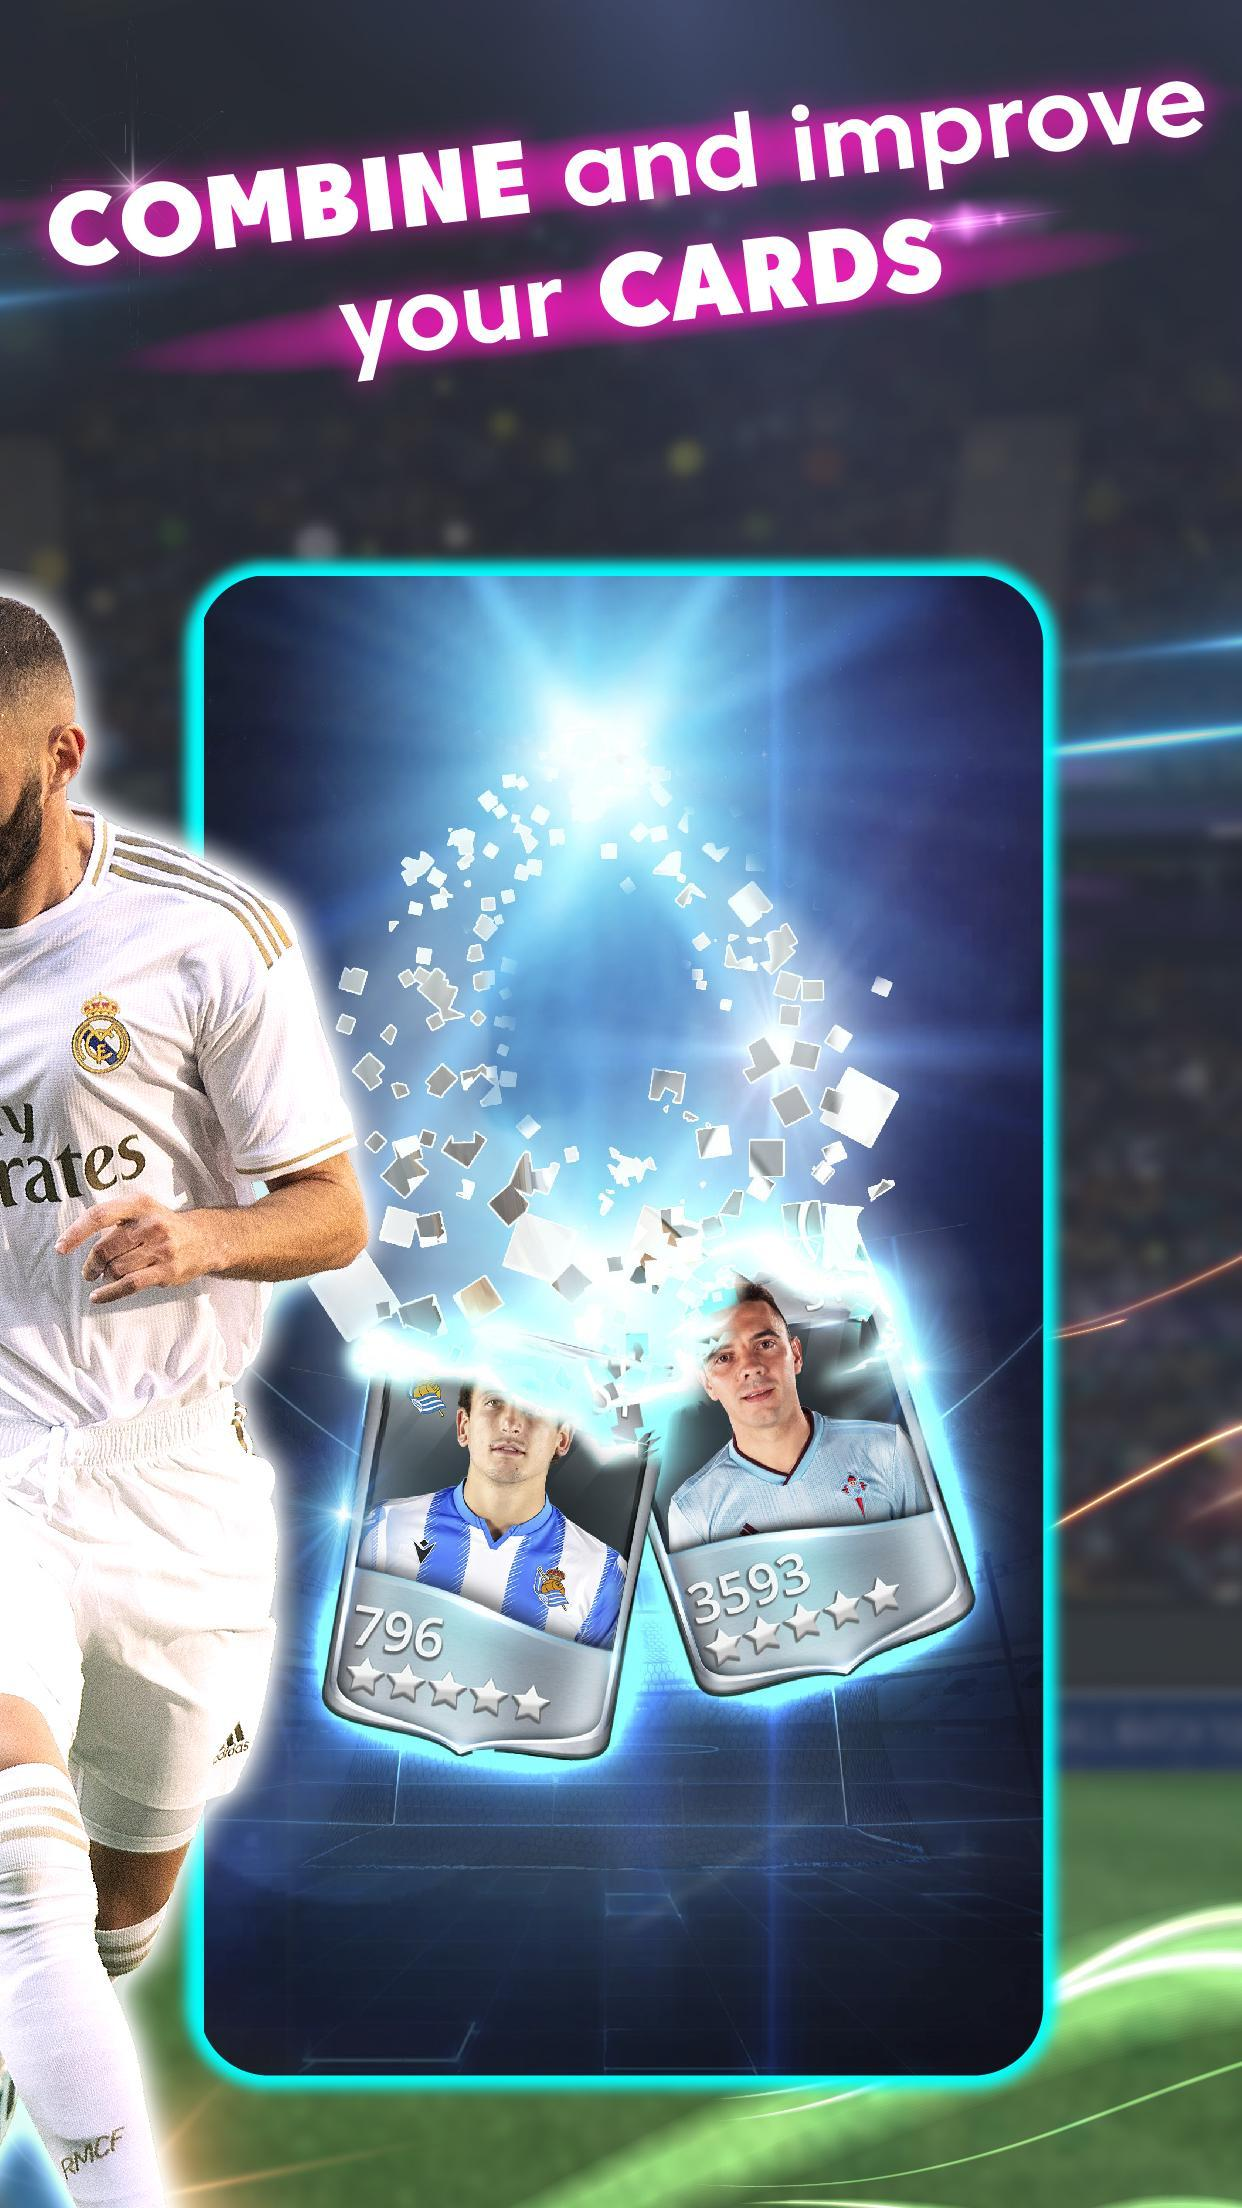 LaLiga Top Cards 2020 - Soccer Card Battle Game 4.1.4 Screenshot 5